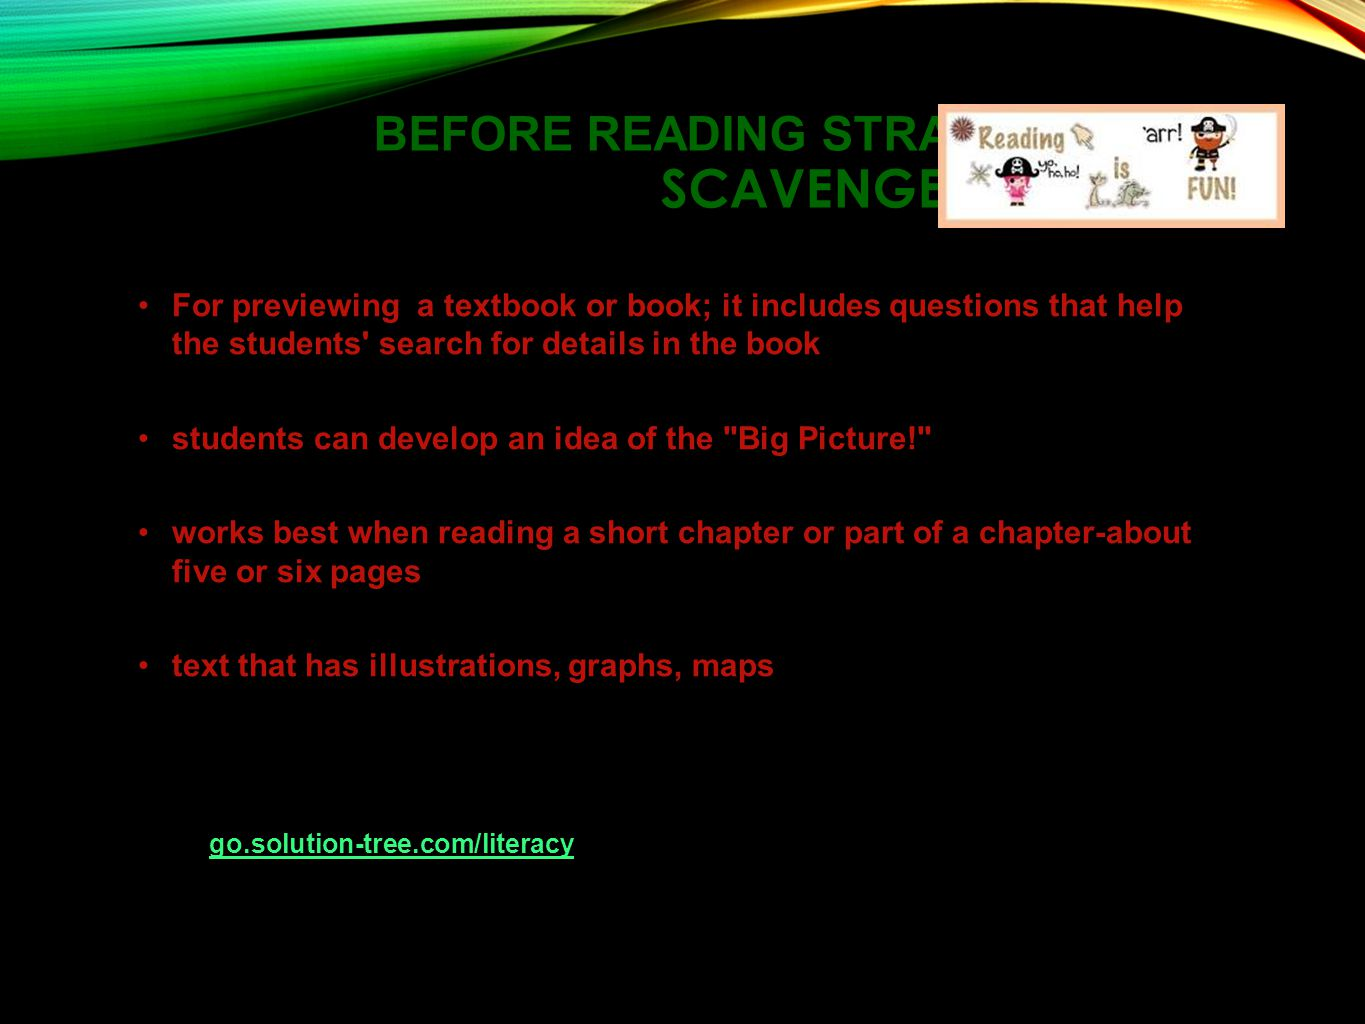 BEFORE READING STRATEGIES SCAVENGER HUNT For previewing a textbook or book; it includes questions that help the students search for details in the book students can develop an idea of the Big Picture! works best when reading a short chapter or part of a chapter-about five or six pages text that has illustrations, graphs, maps Reproducible and online resources : Power Tools for Adolescent Literacy: Visit go.solution-tree.com/literacy to download this pagego.solution-tree.com/literacy